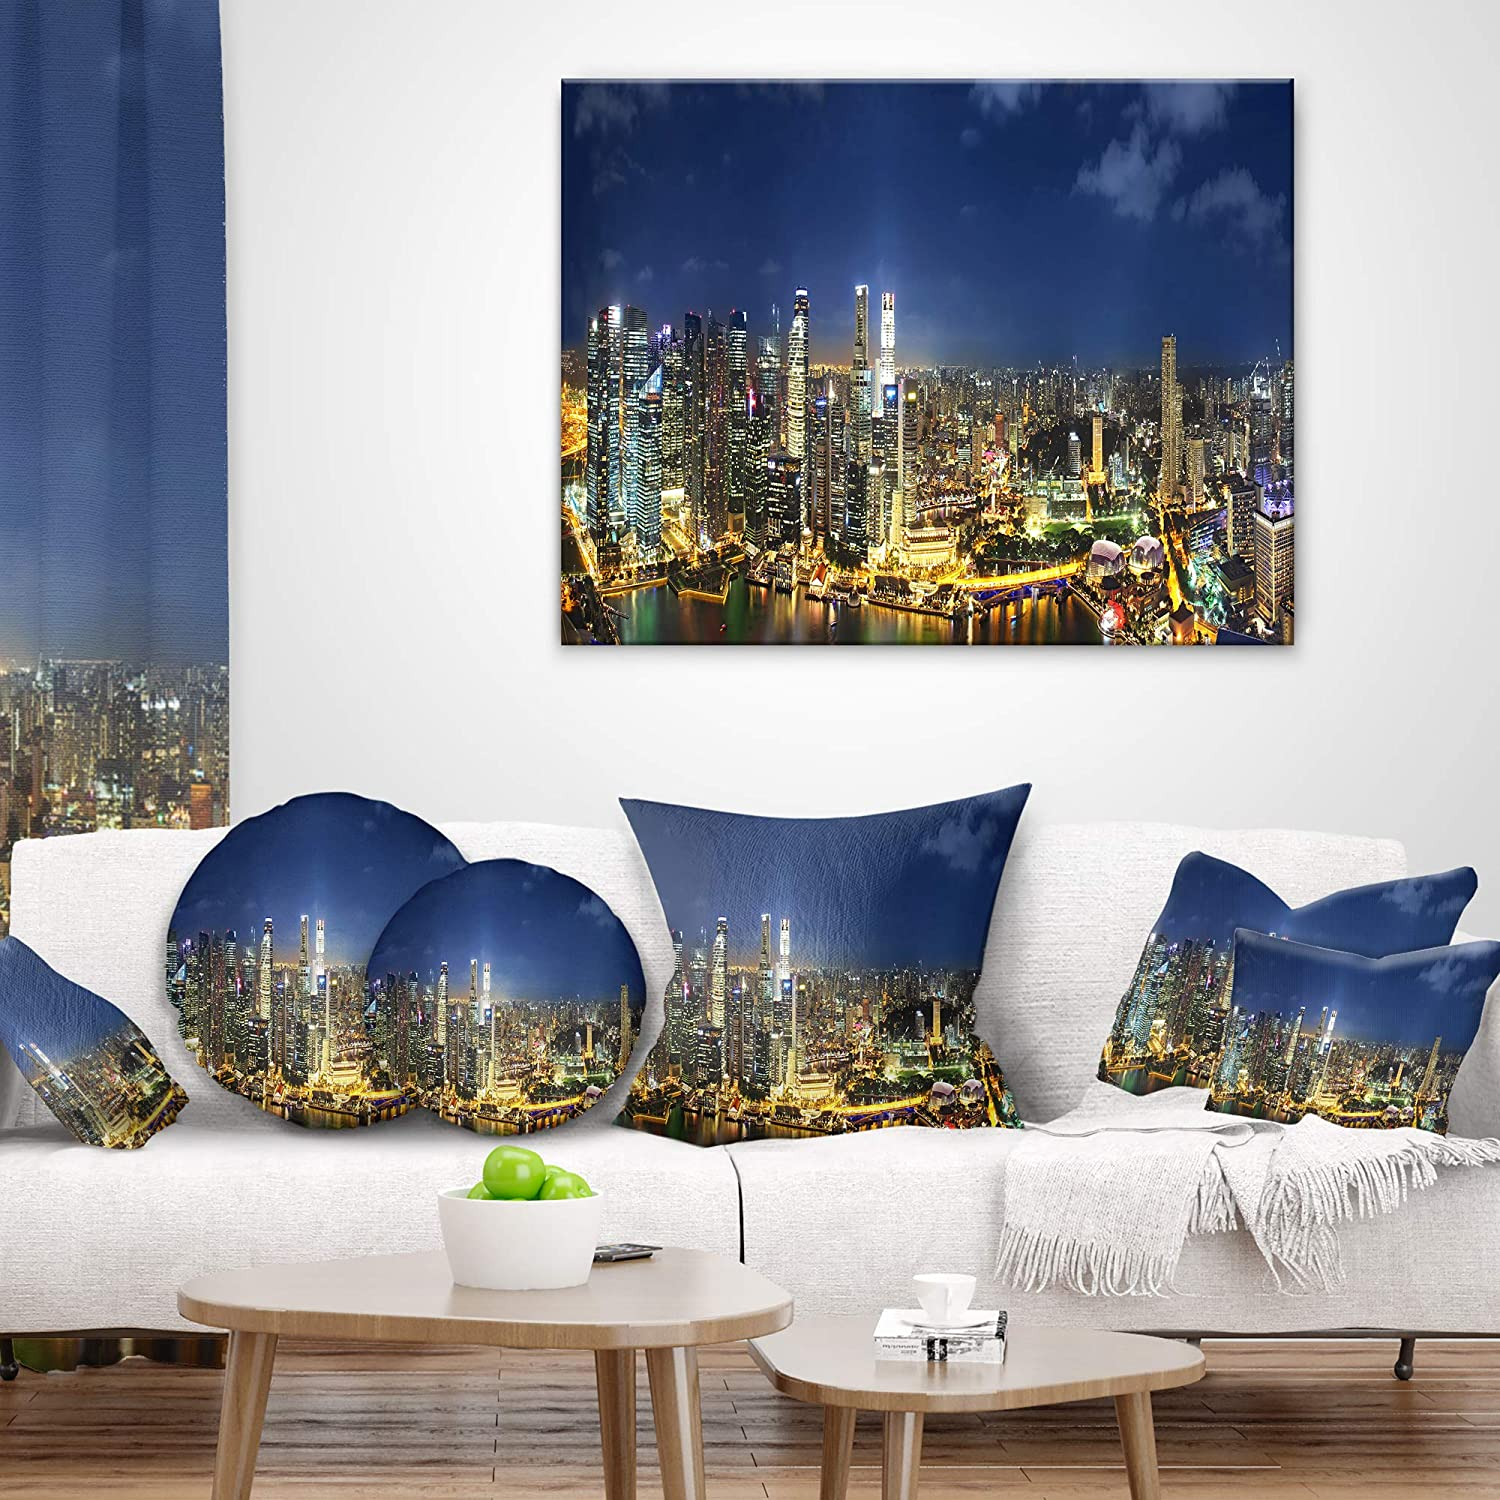 Sofa Throw Pillow 12 in in Insert Printed On Both Side x 20 in Designart CU10074-12-20 Singapore Skyscrapers Panorama Cityscape Lumbar Cushion Cover for Living Room